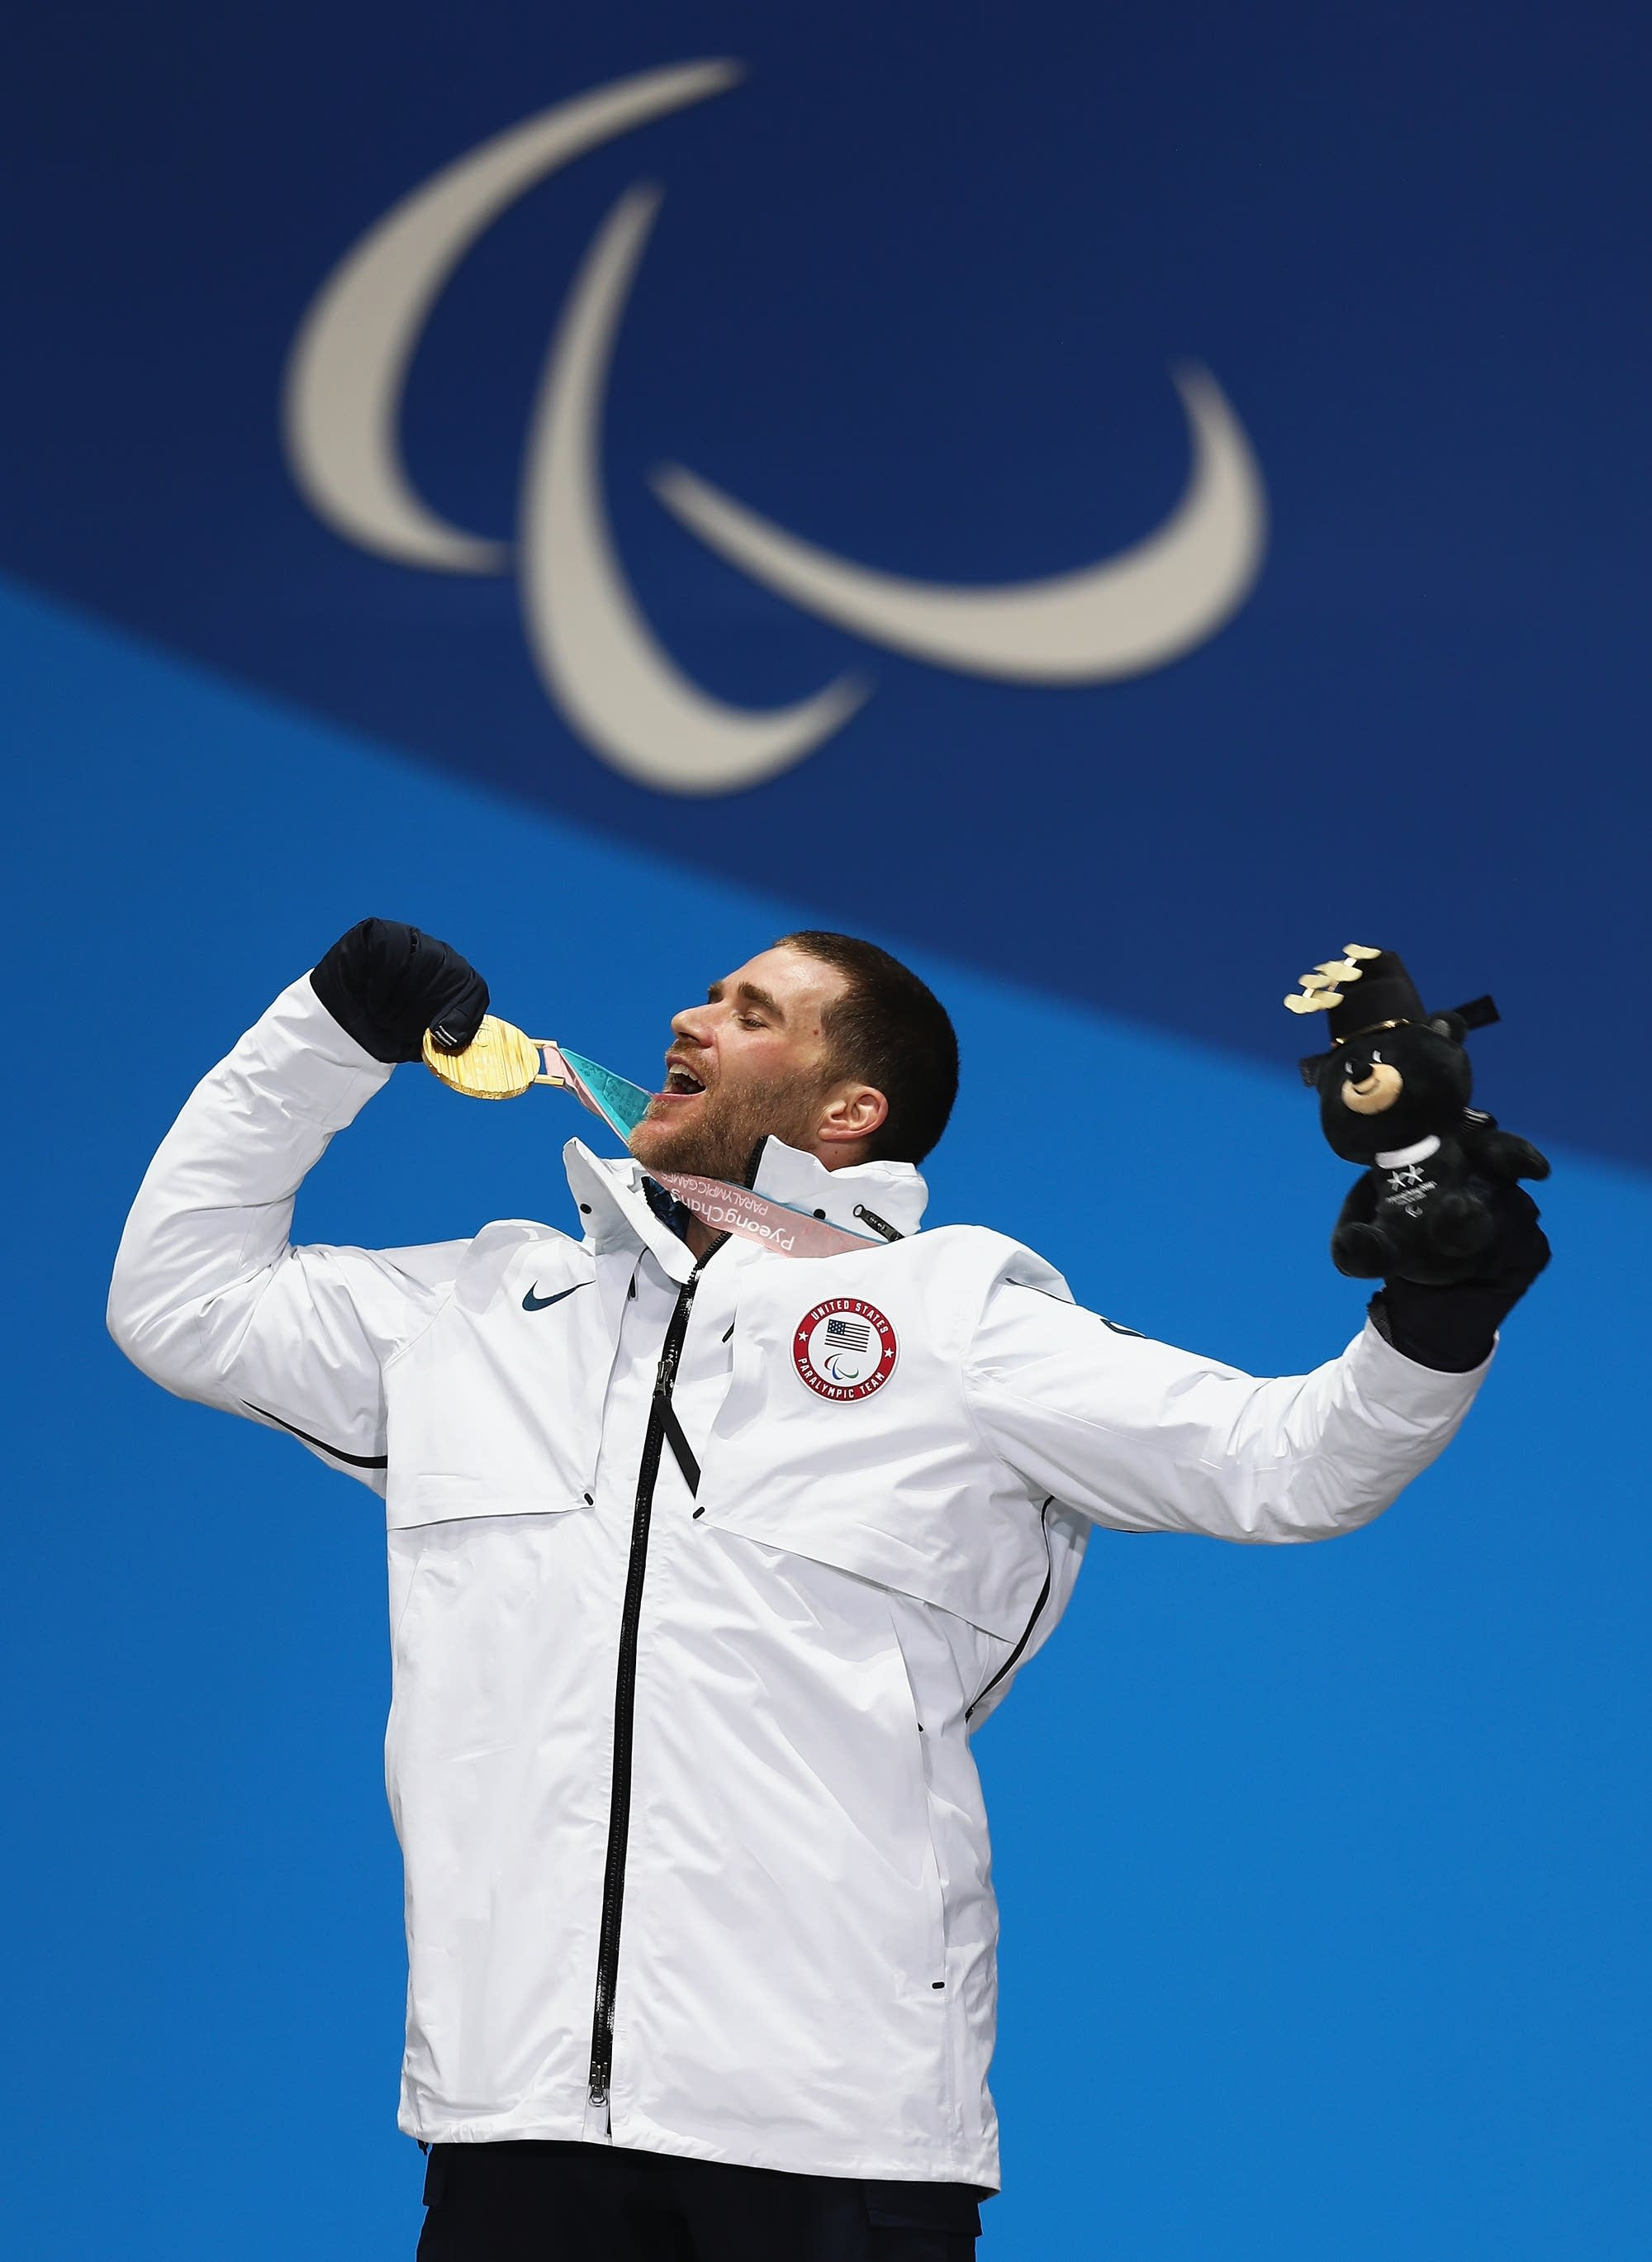 Mike Schultz celebrates after winning the Gold medal in Pyeongchang.